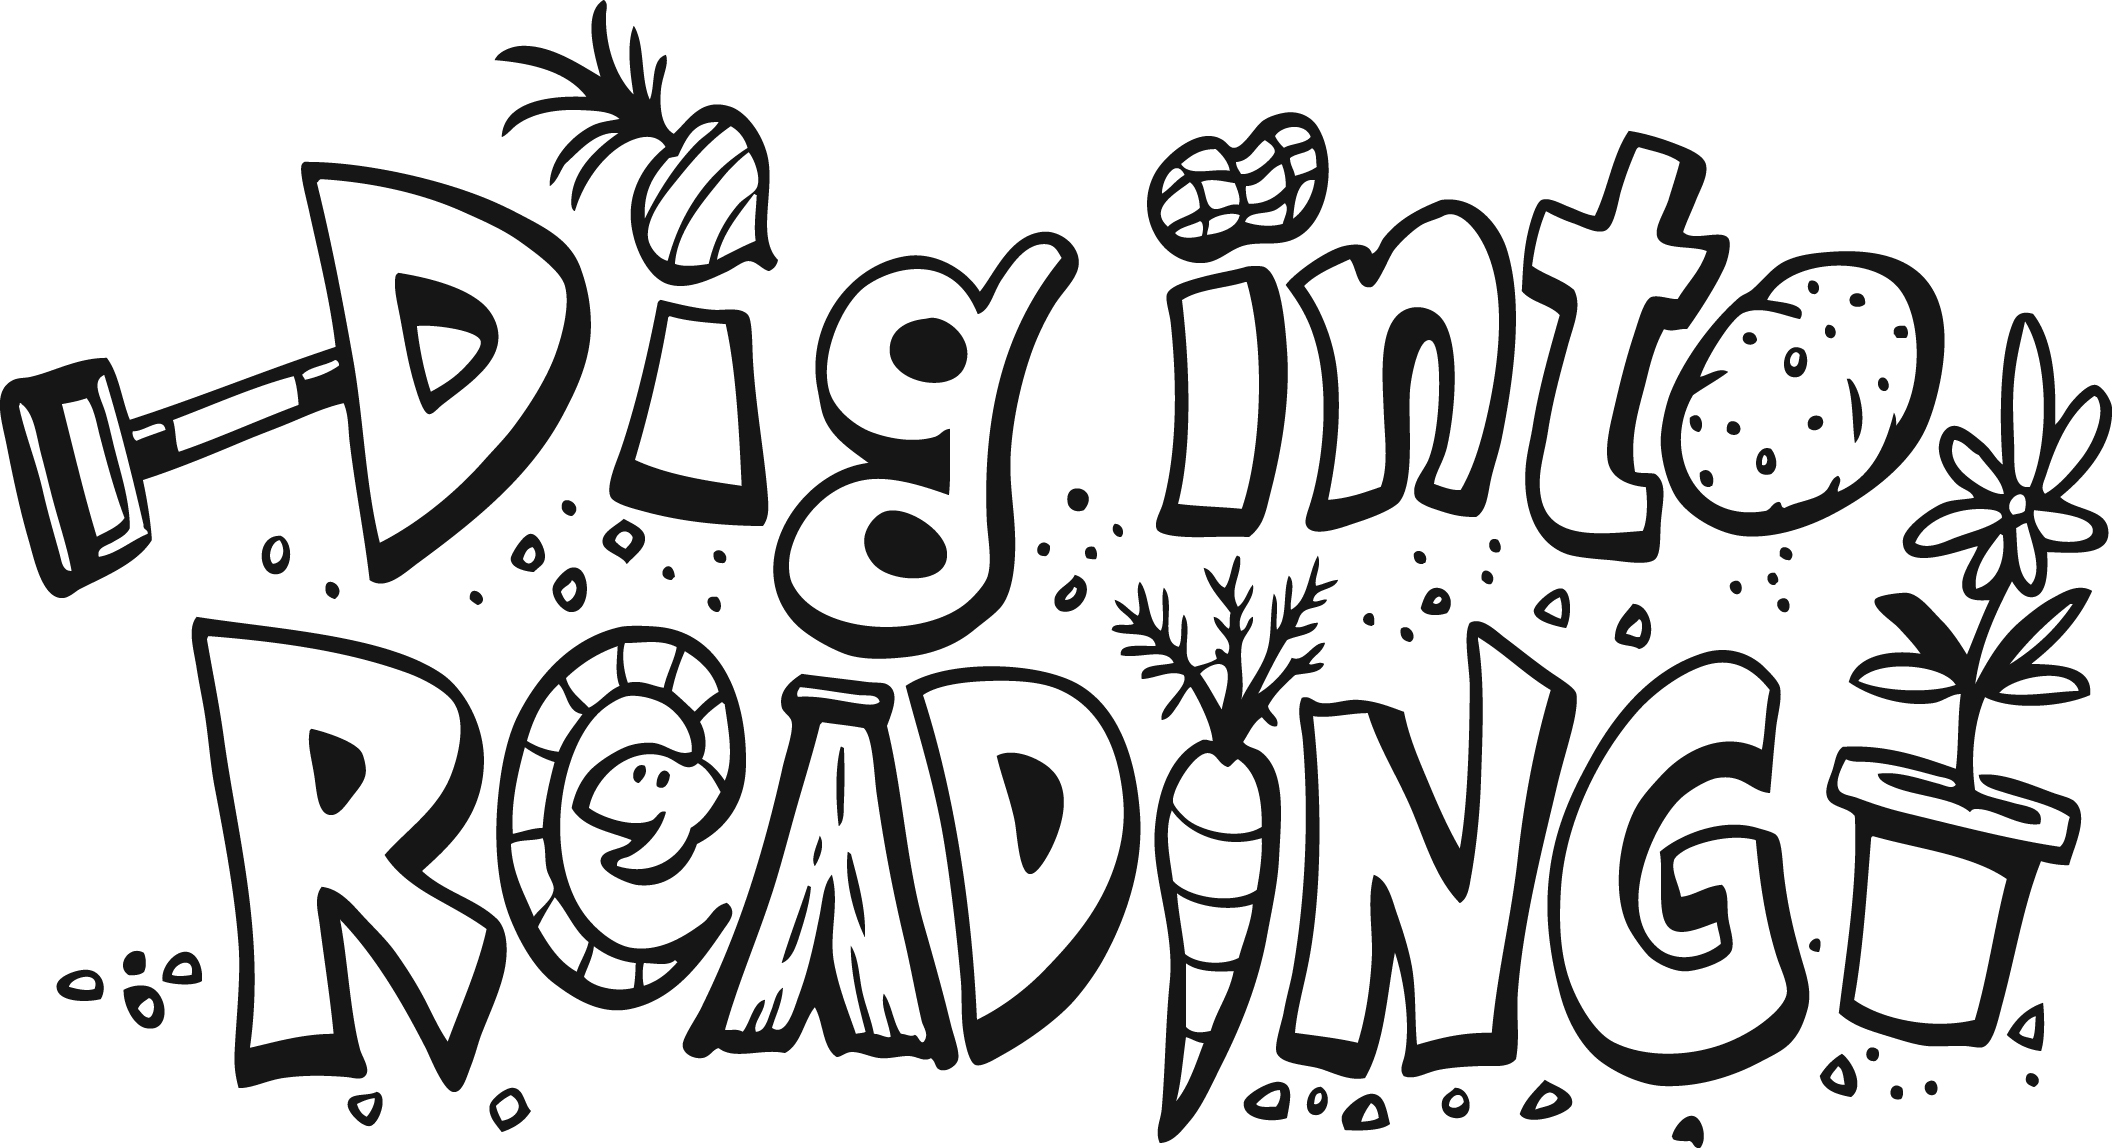 Dig into reading coloring pages ~ Underwood Public Library | Underwood, North Dakota | Page 4